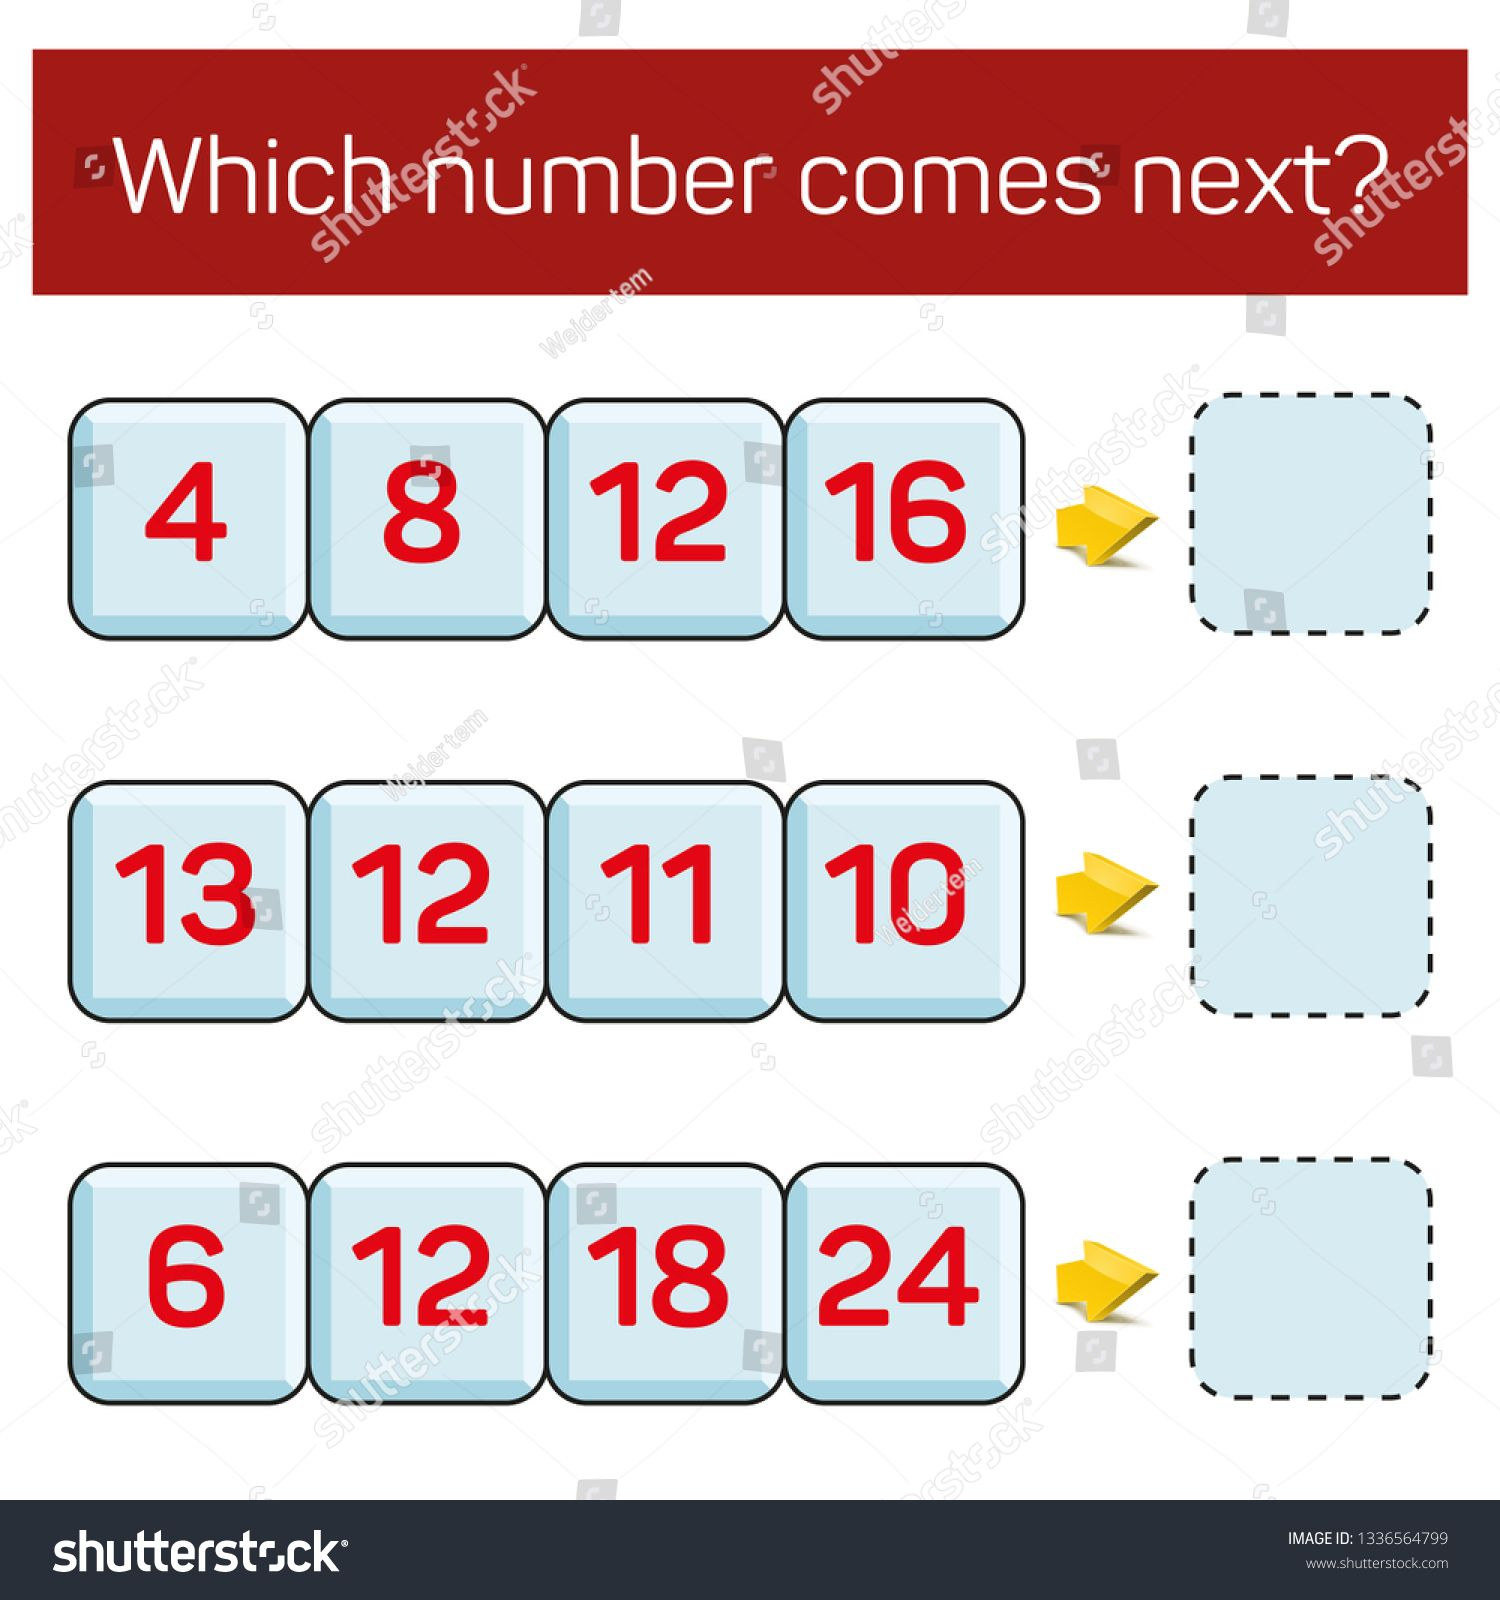 What Number Comes Next Educational Children S Game Kids